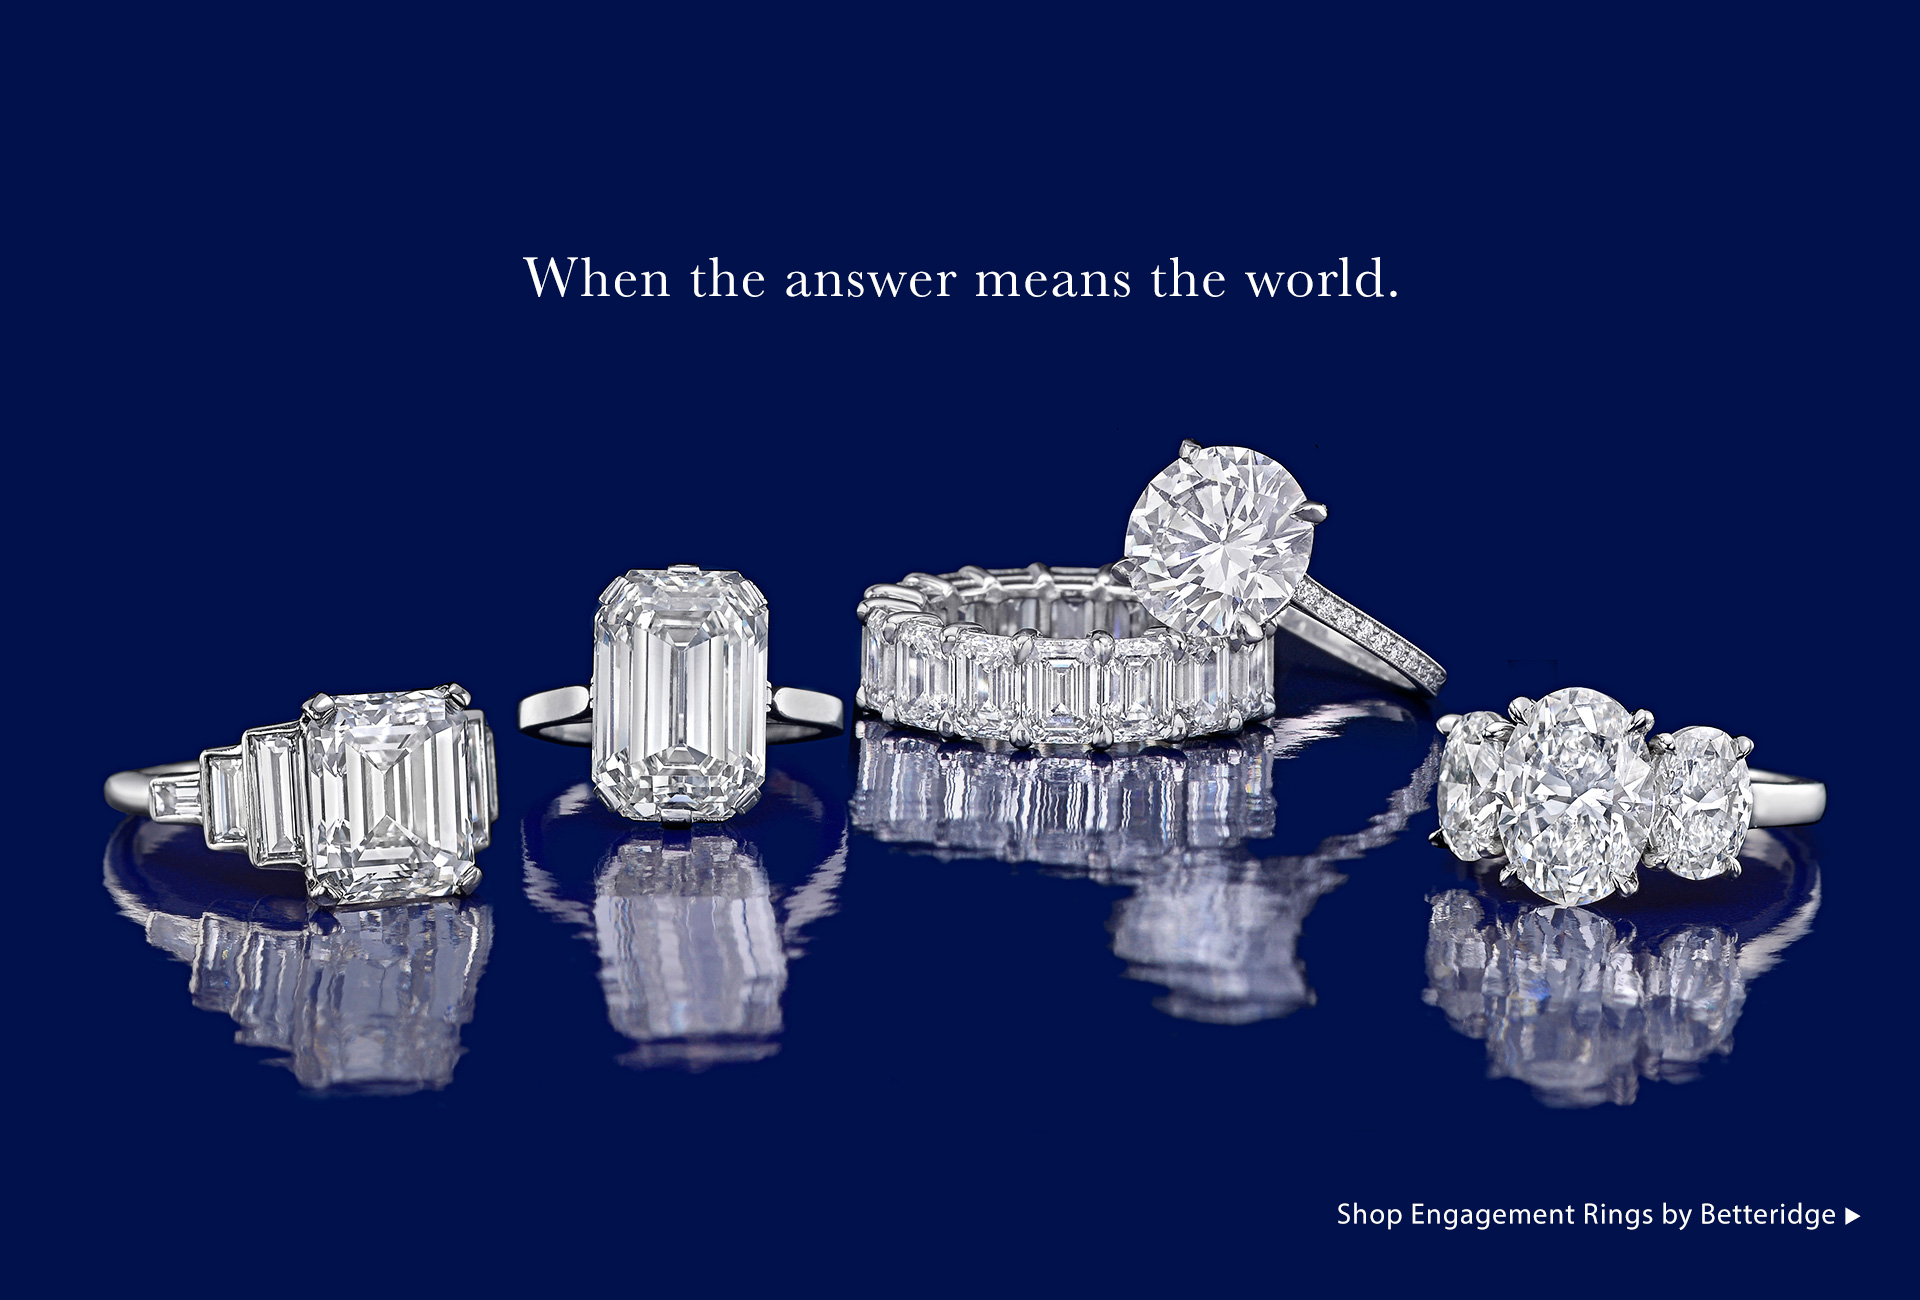 Shop Engagement Rings by Betteridge